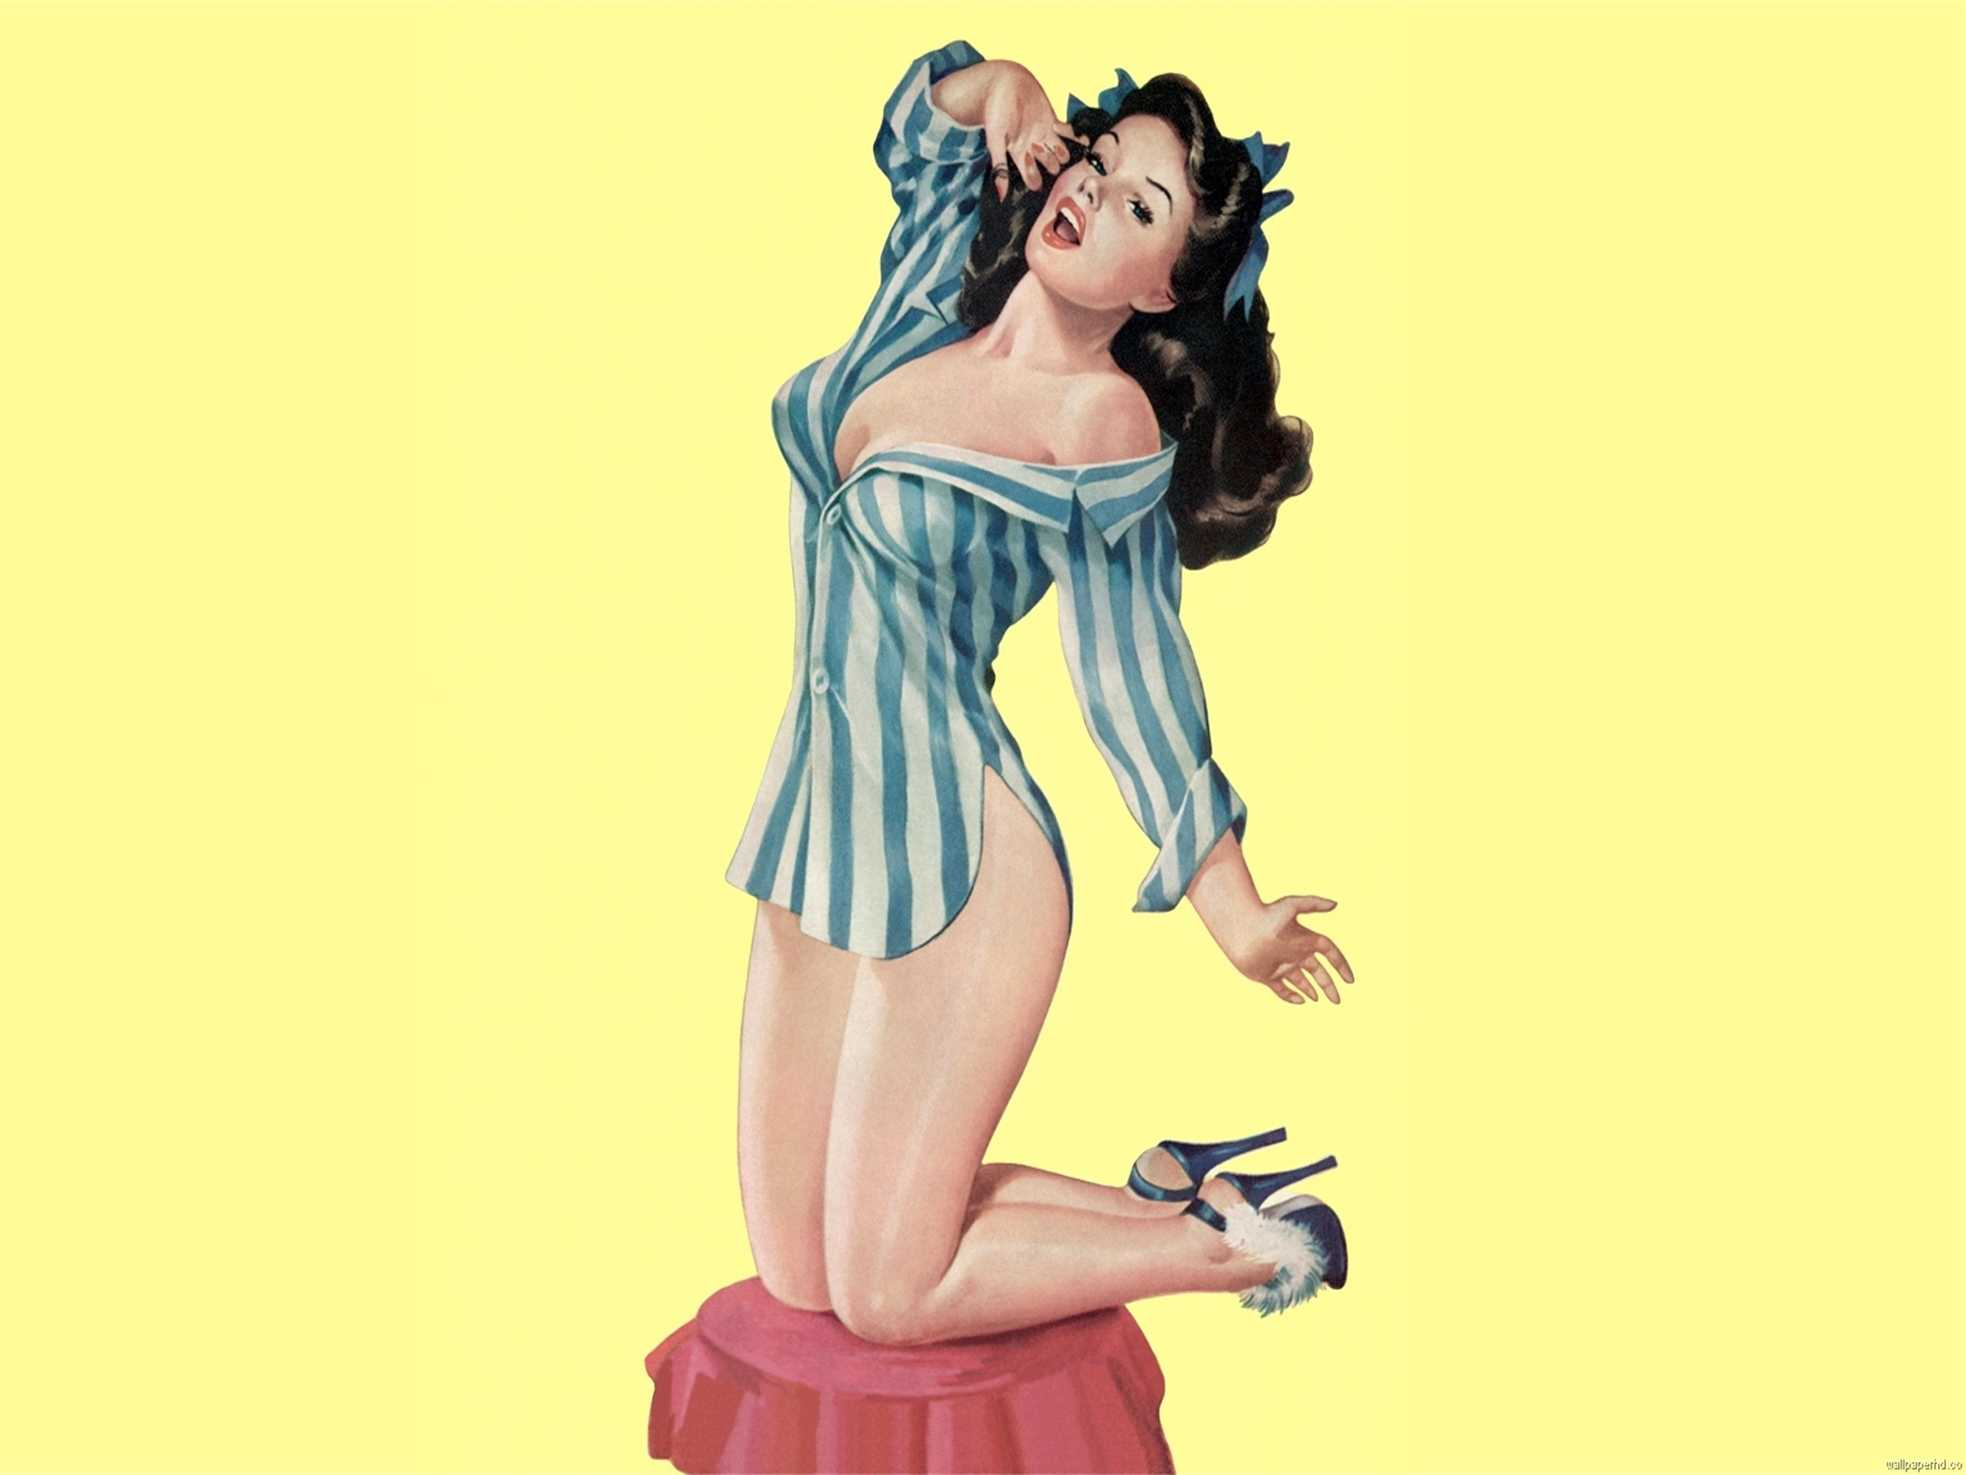 Vintage Pinup Girl Wallpaper Posted By Ethan Anderson